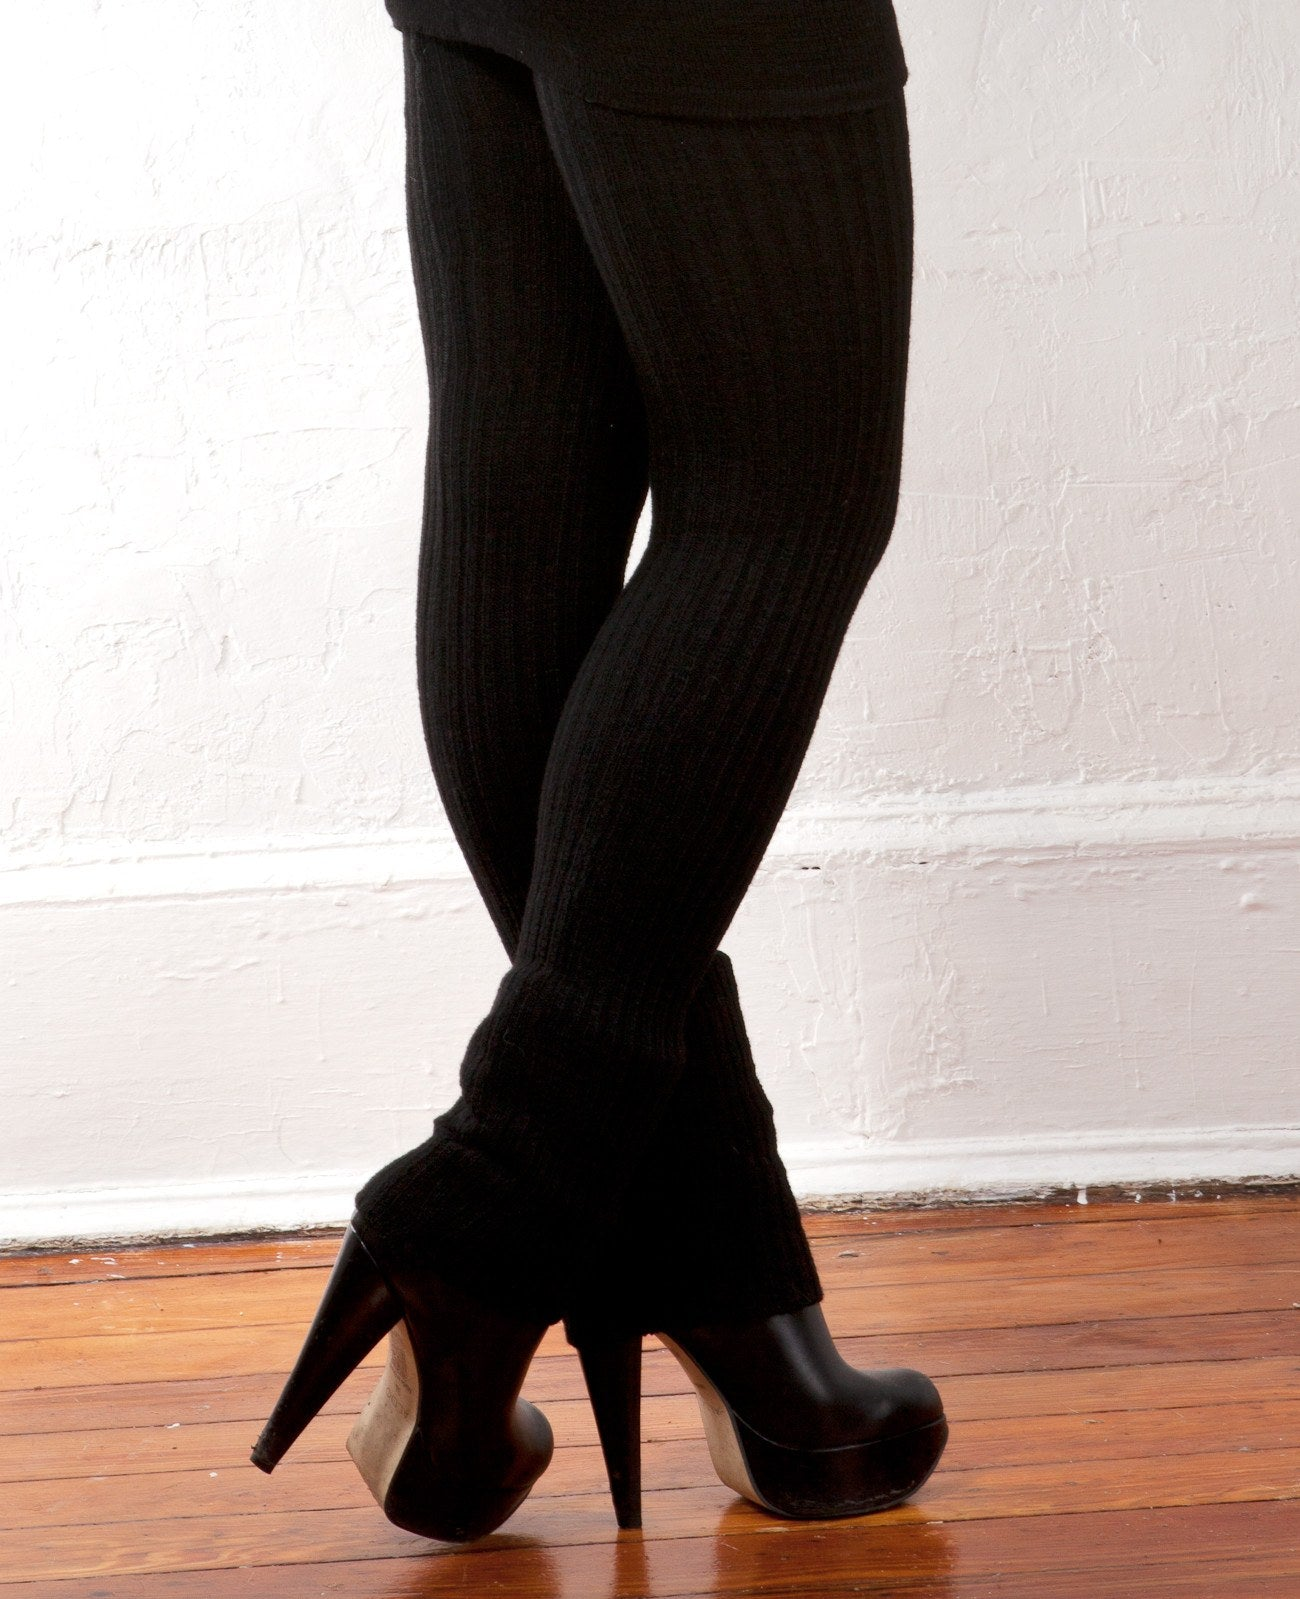 Sexy Little Black Stretch Knit Dress & 28 Inch Thigh High Leg Warmers KD dance Made In USA @KDdanceNewYork #MadeInUSA - 5